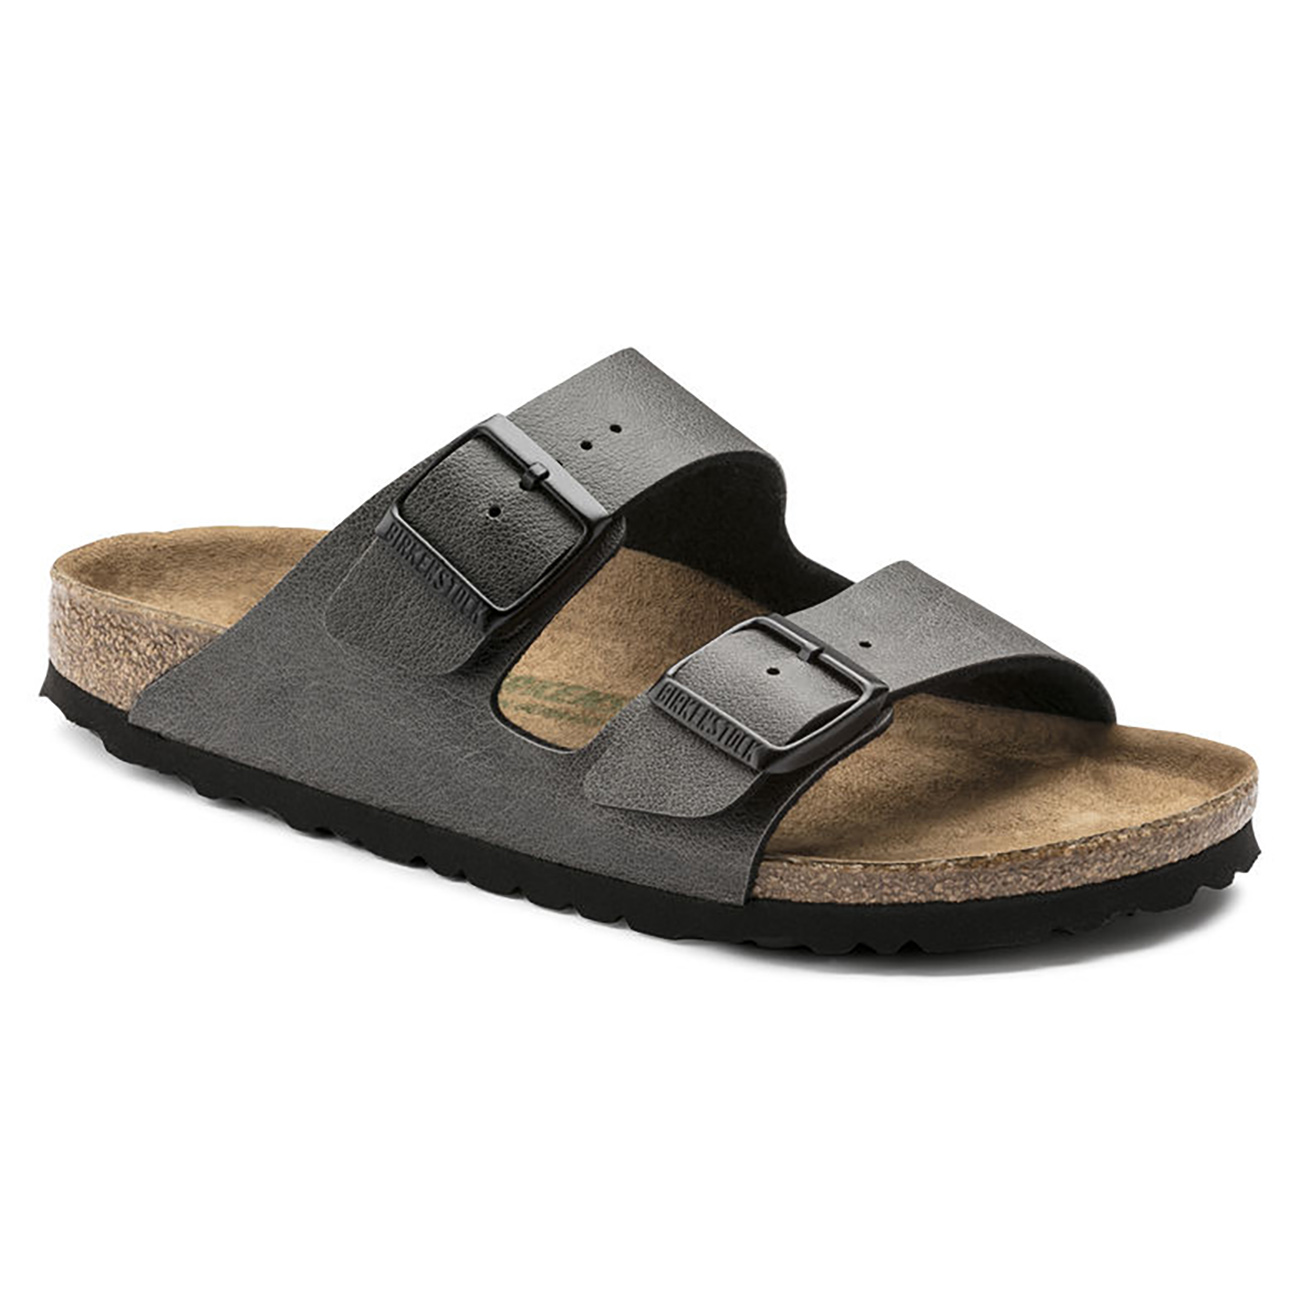 Unisex Adults Birkenstock Arizona Vegan